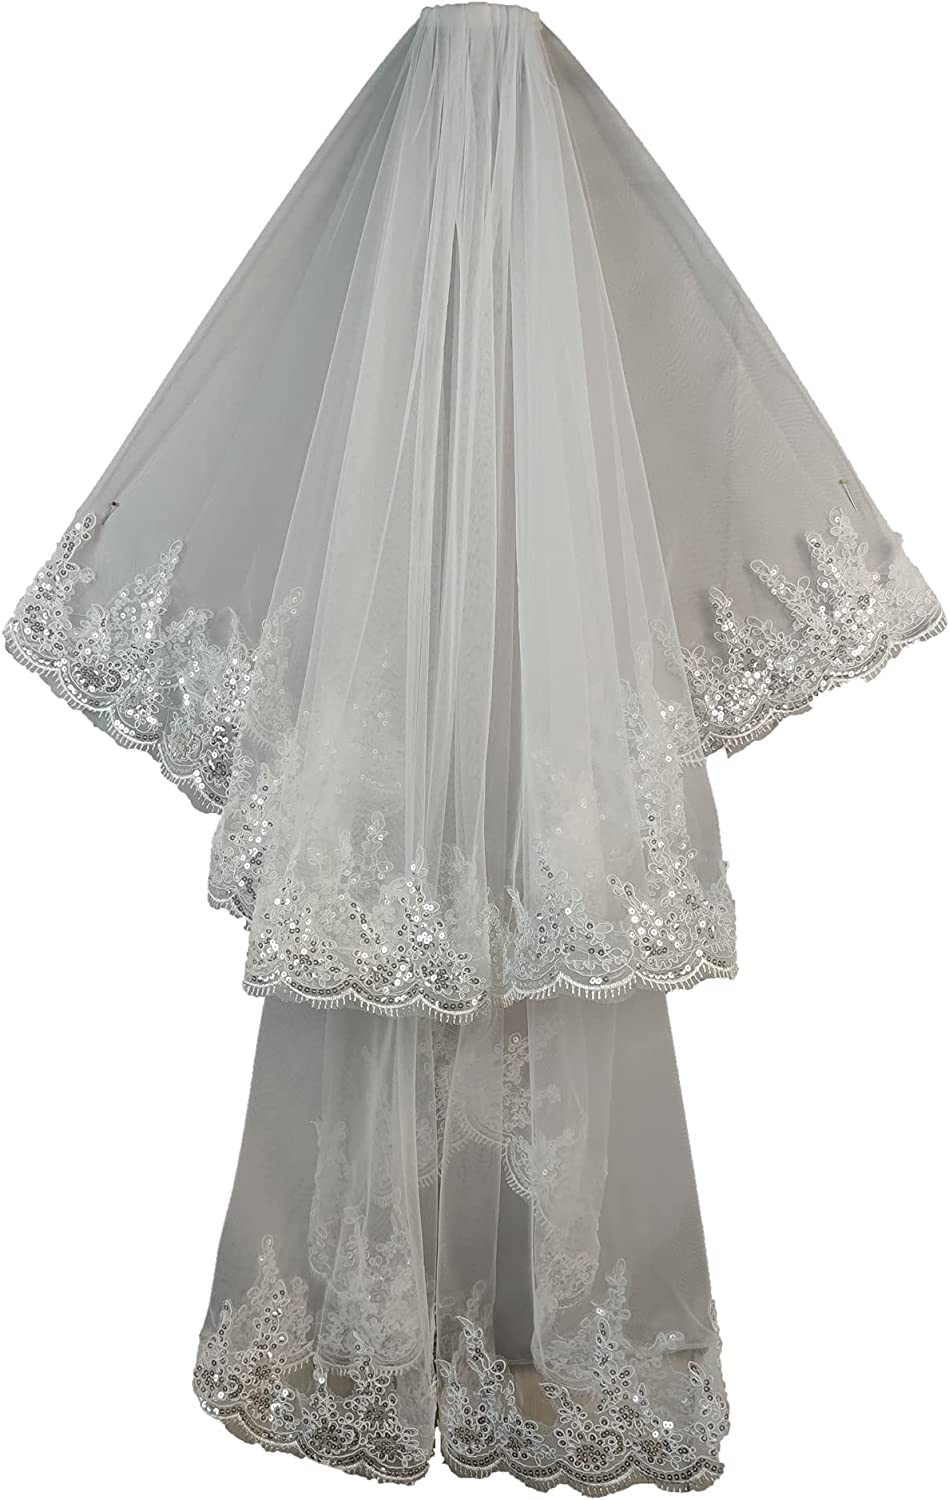 Faithclover Wedding Veils Fingertip Length Ivory 2 Tiers White Sequins Lace Edge with Comb